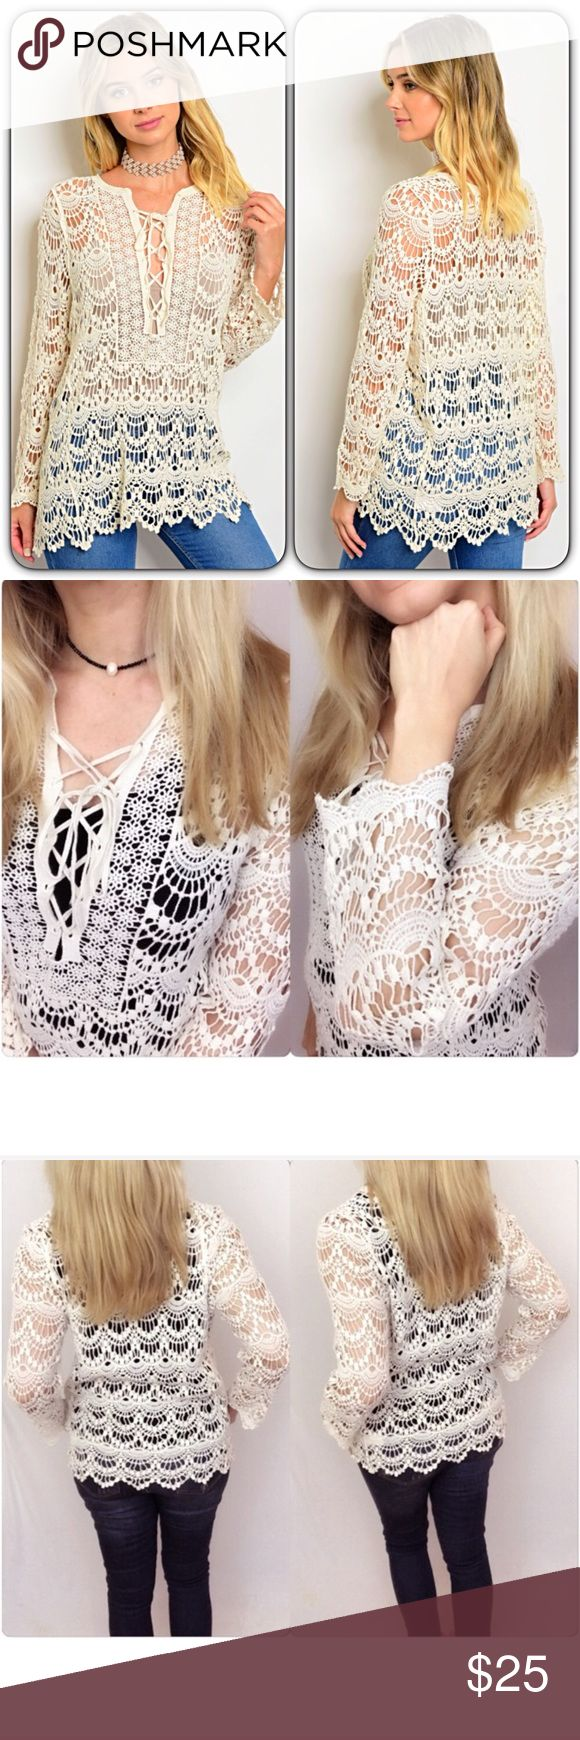 """Stunning Crochet Lace Up Tunic Top 2/4 Small Love this stunning crochet lace cover up top. Great layering piece with cami/tank or even wear as swimsuit coverup. Lace up front mini bell sleeves - Cream 100% Cotton Off White Lace Top scalloped ruffle like hem  Small 2/4 Bust 32-34 Length 27"""" Tops"""